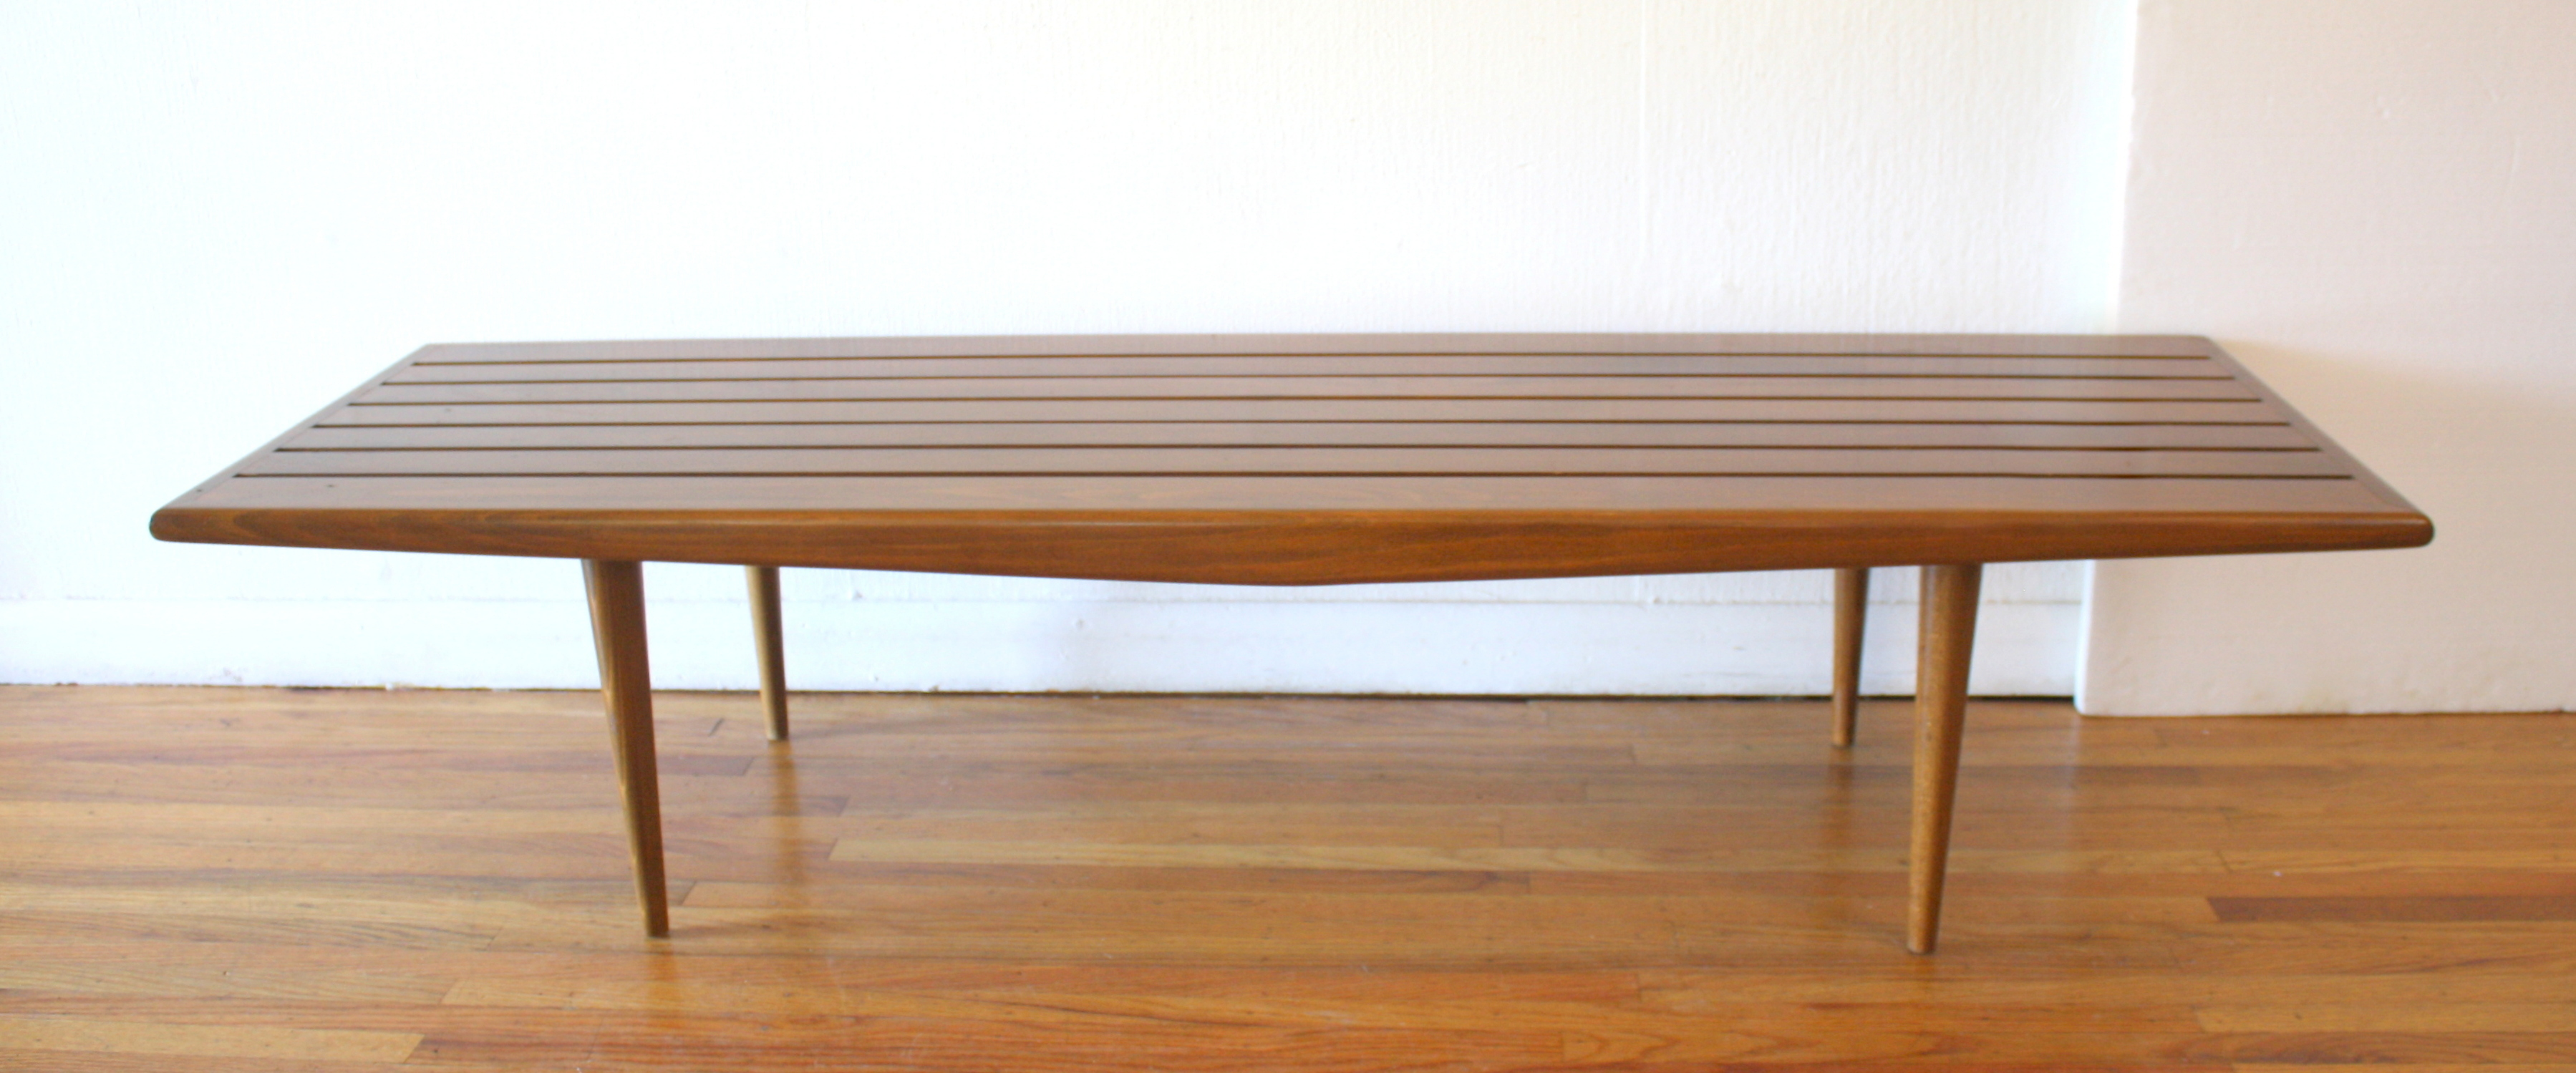 mcm slatted bench with arch 1